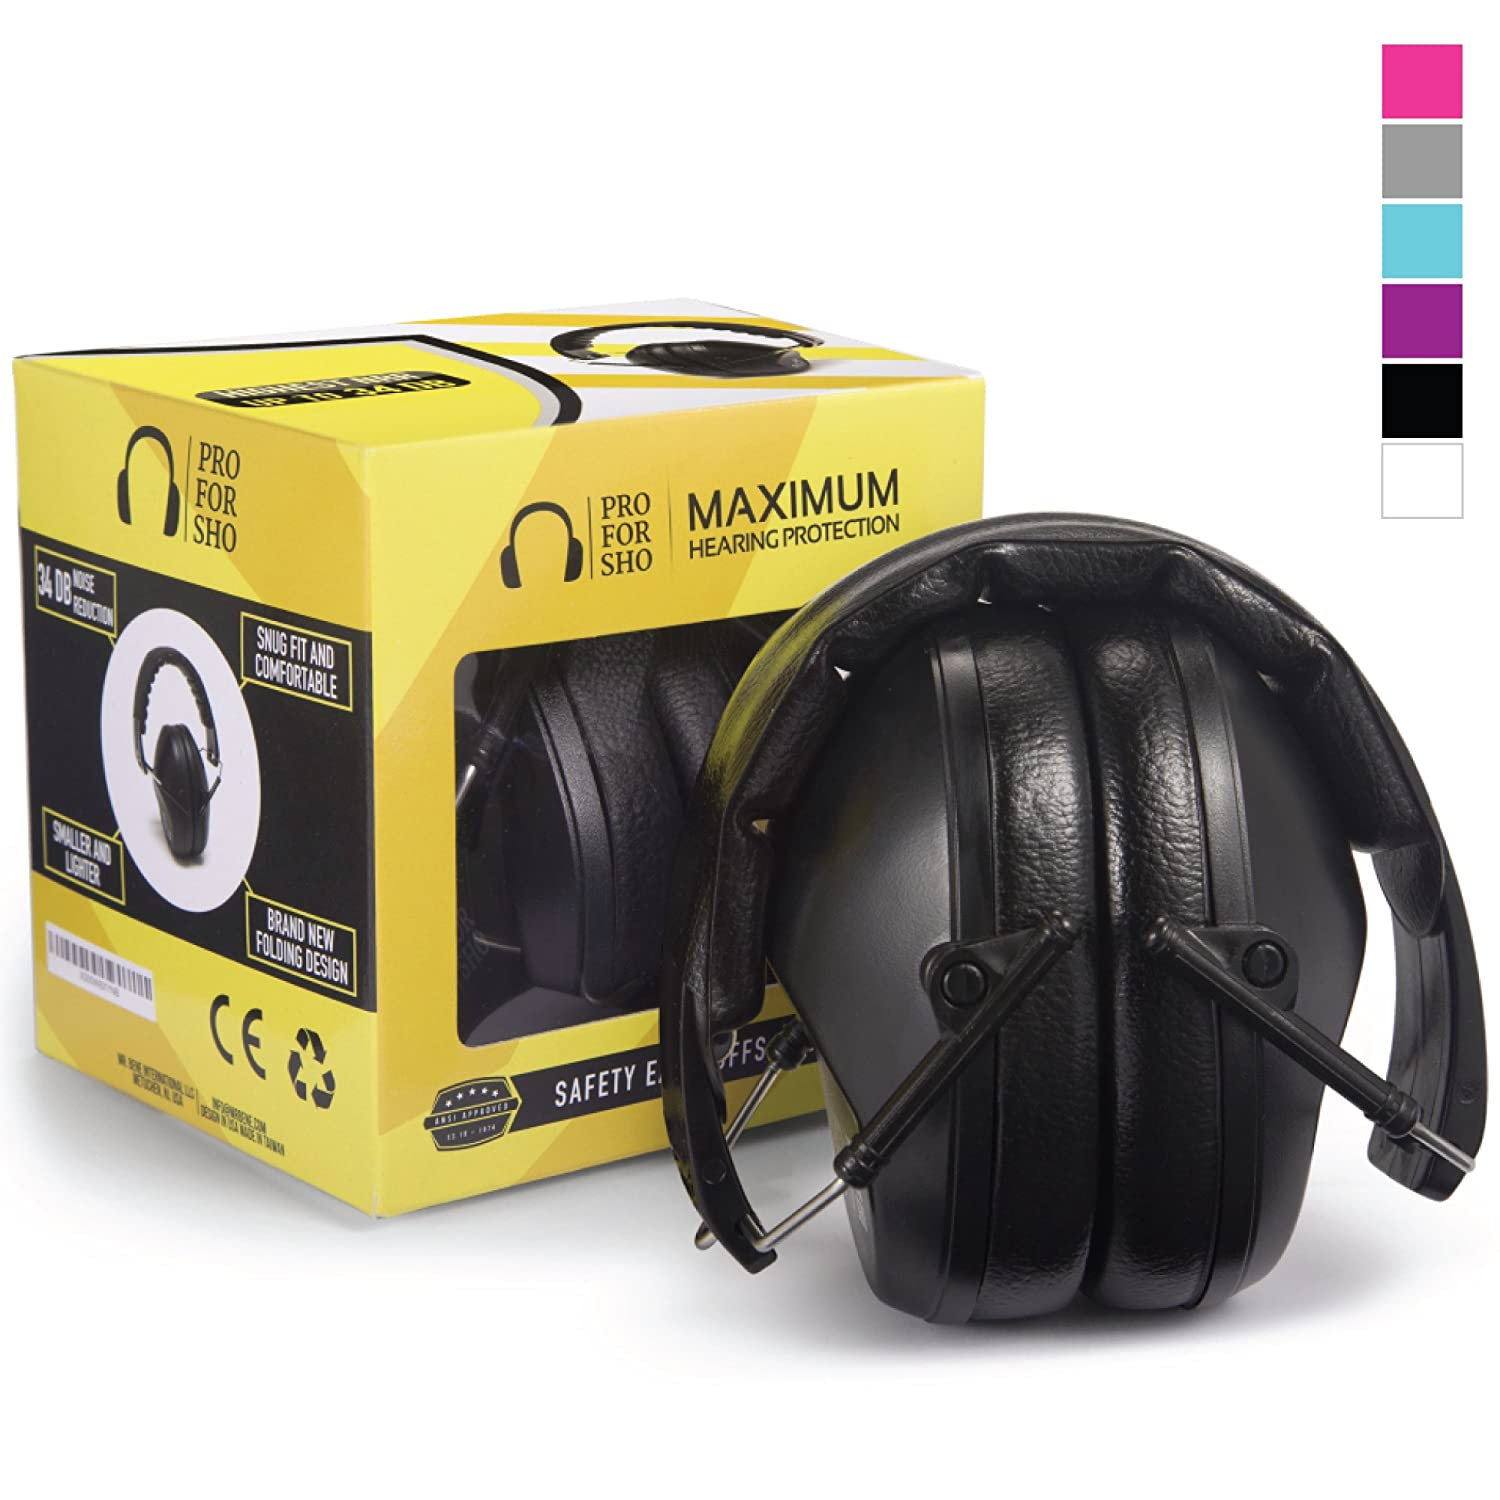 Pro For Sho 34dB Safety Ear Protection - Special Designed Ear Muffs Lighter Weight & Maximum Hearing Protection , Black